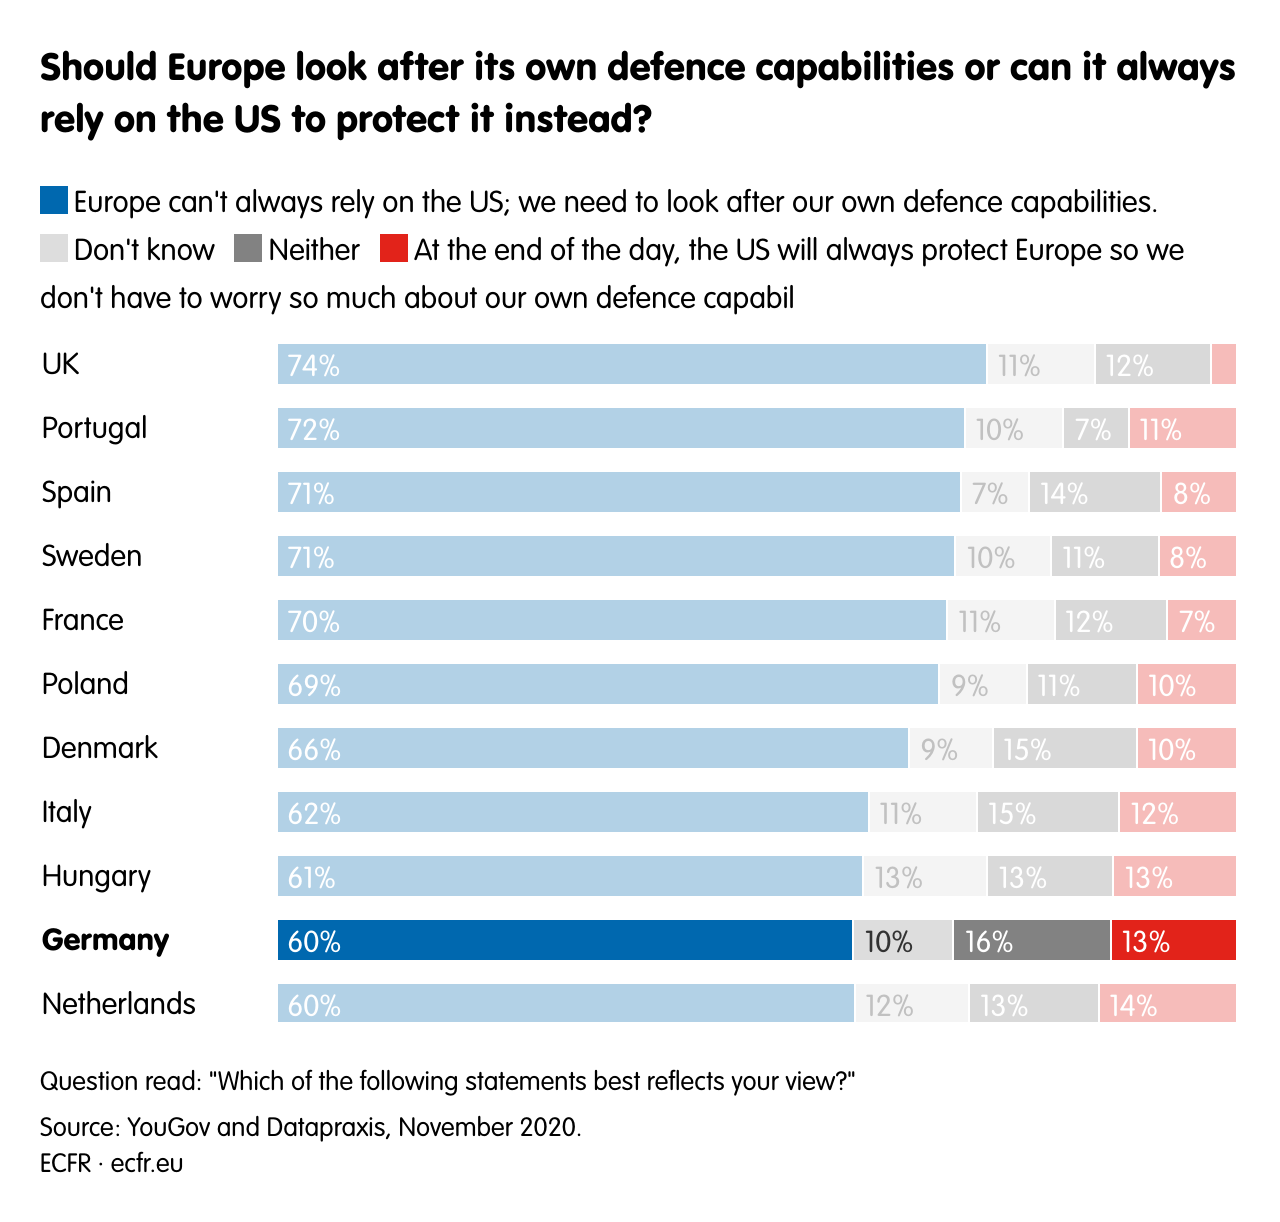 Should Europe look after its own defence capabilities or can it always rely on the US to protect it instead?